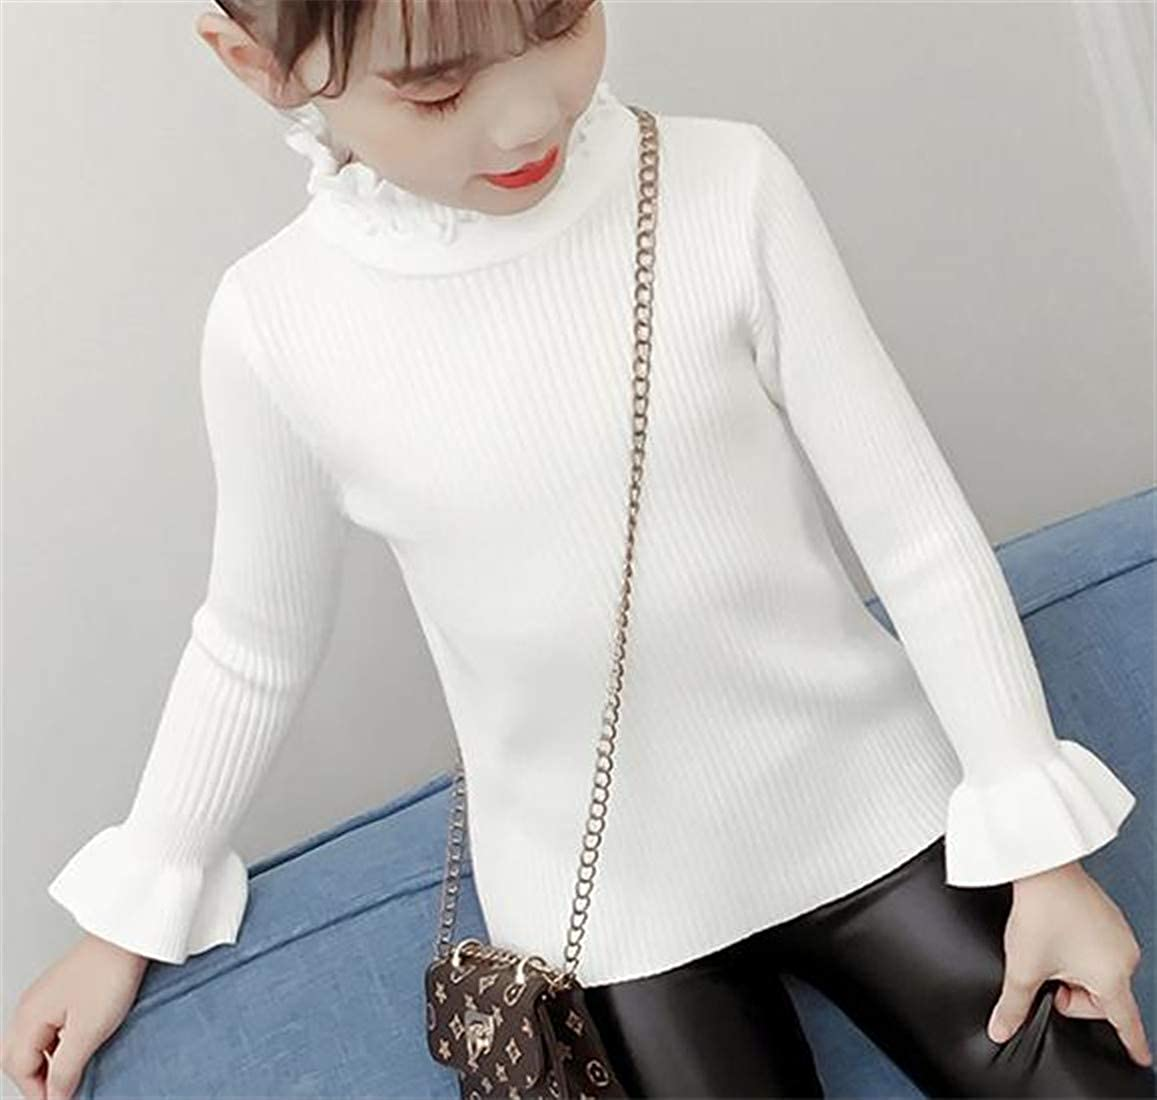 Lutratocro Girls Mock Neck Pure Color Pullover Knitted Long Sleeve Sweater